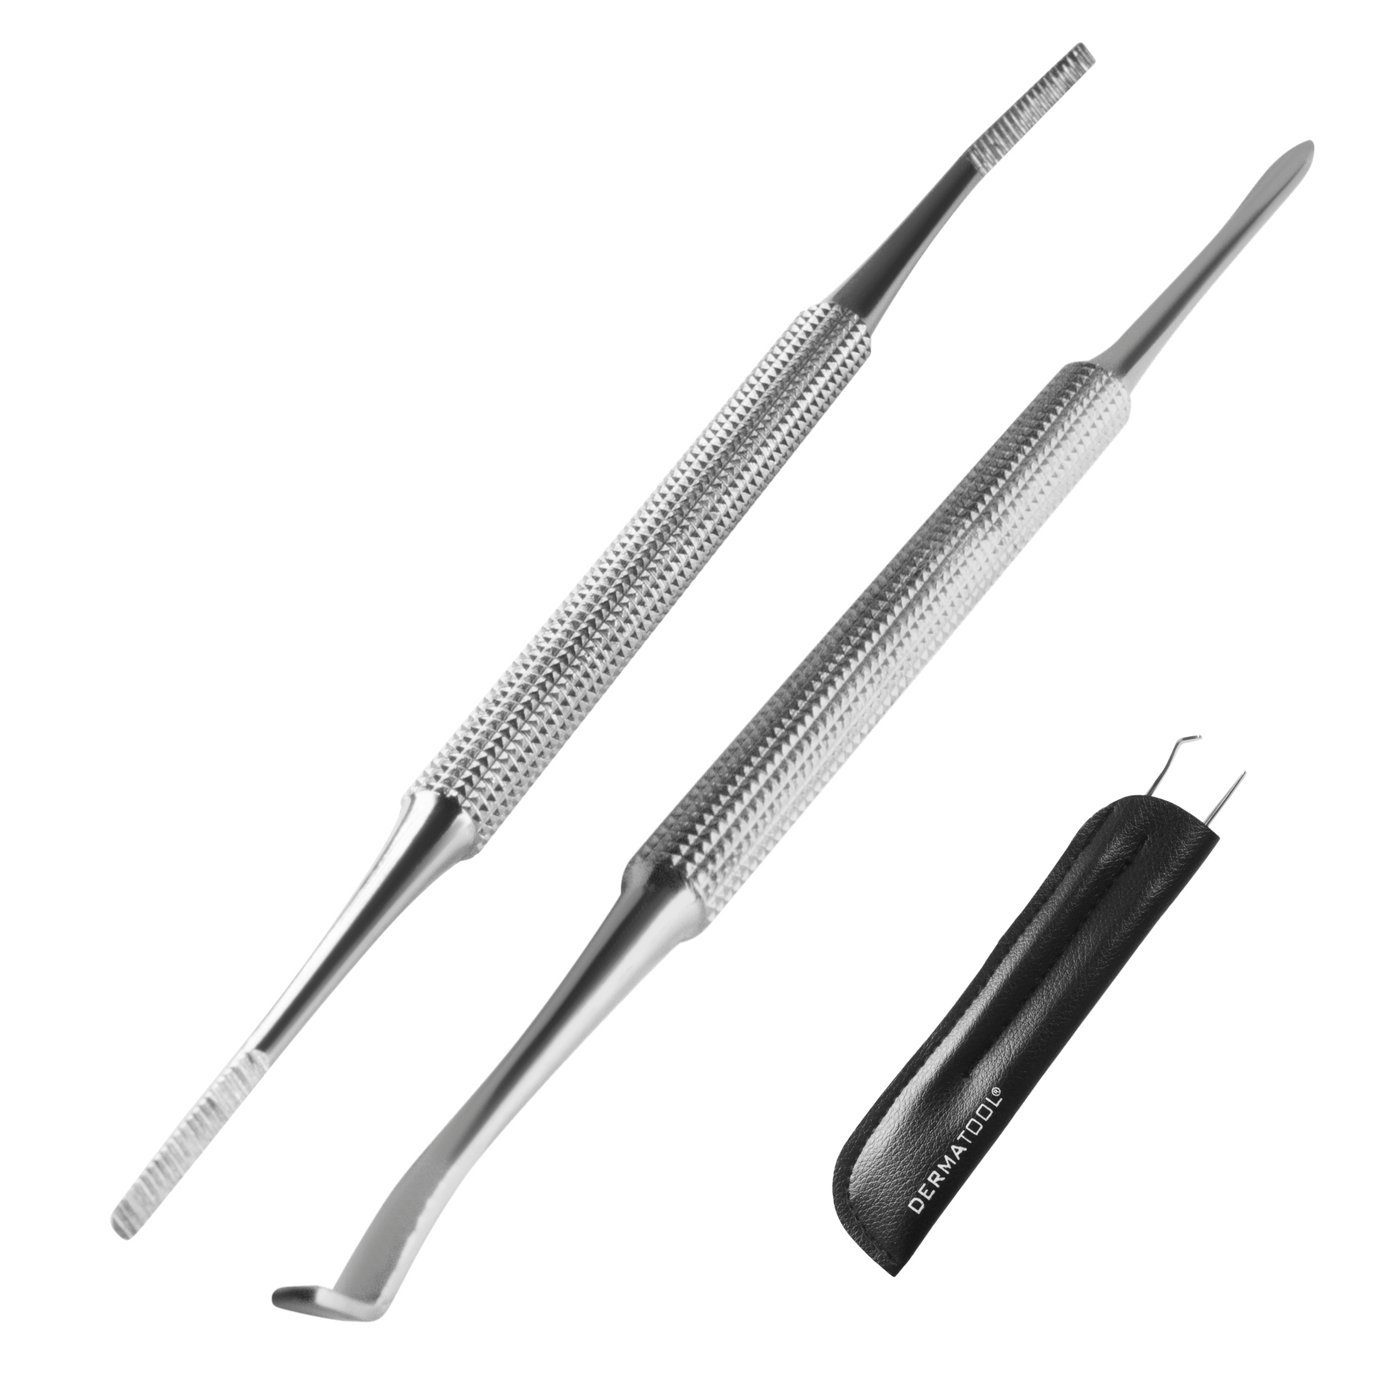 Ingrown Toenail Treatment Tool – Podiatrist Premium Set by DERMATOOL – Toenails, Pedicure, Nails, Stainless Steel Health Foot Care, Precision File and Excavator Lifter With Leather Case